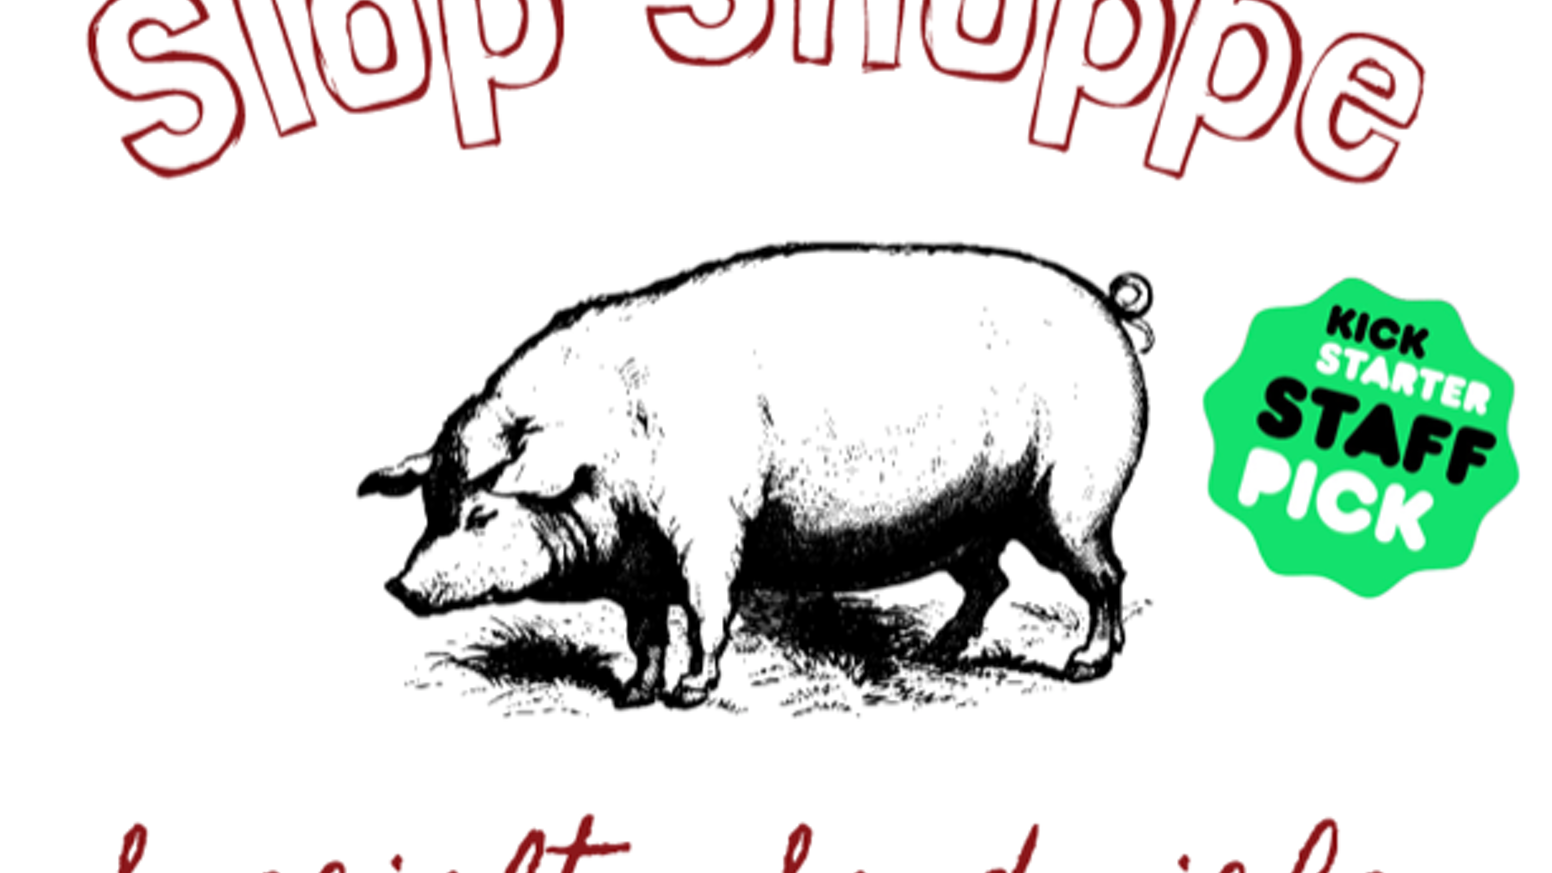 Slop Shoppe is a specialty sandwich shop that uses local, farm fresh ingredients, with unique flavor combinations.